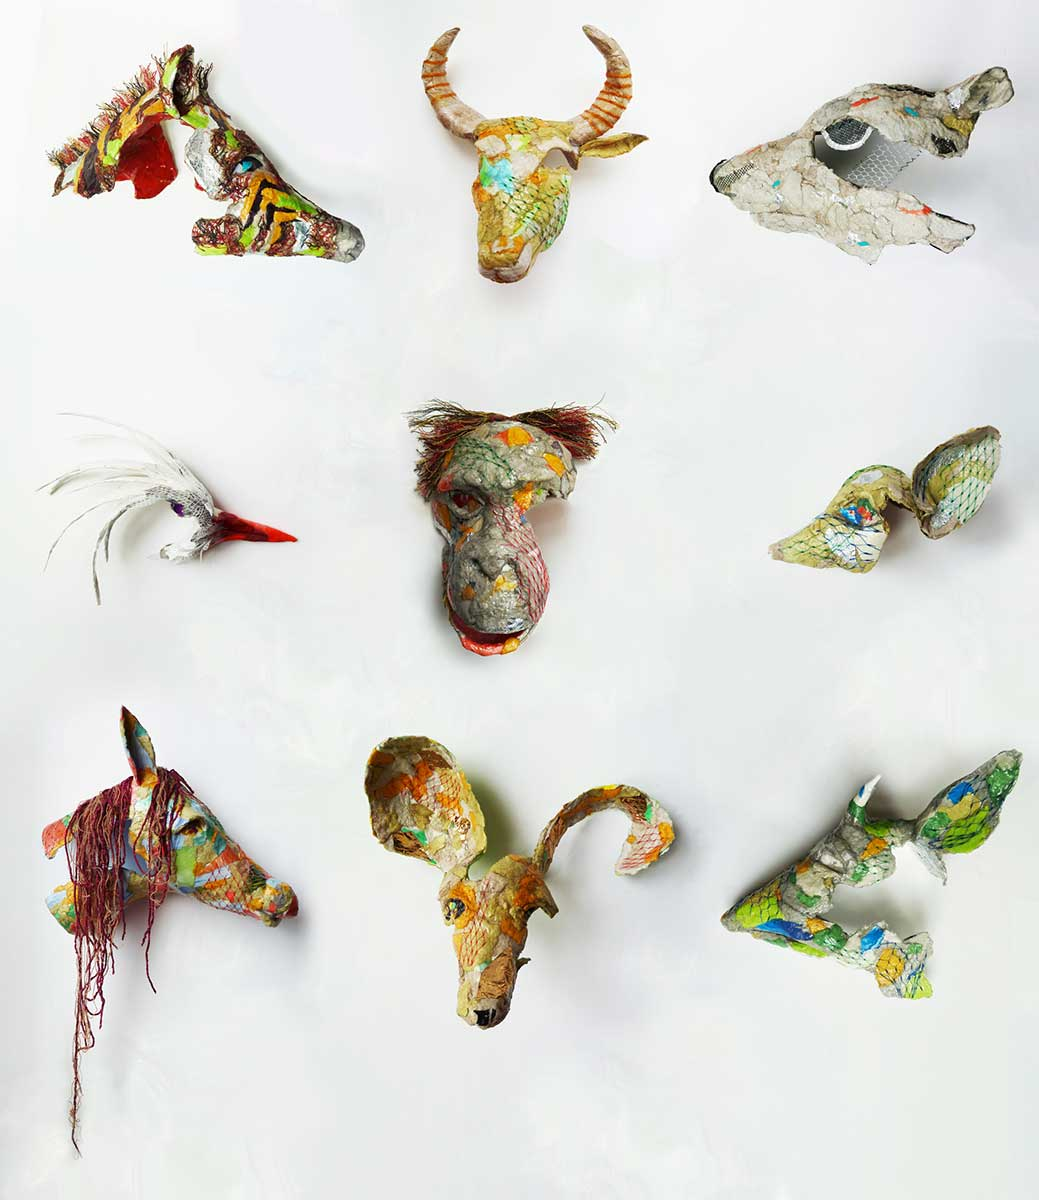 endangered upcycled materials and varnish glue sculptures entered Wildlife Artist of the Year 2020